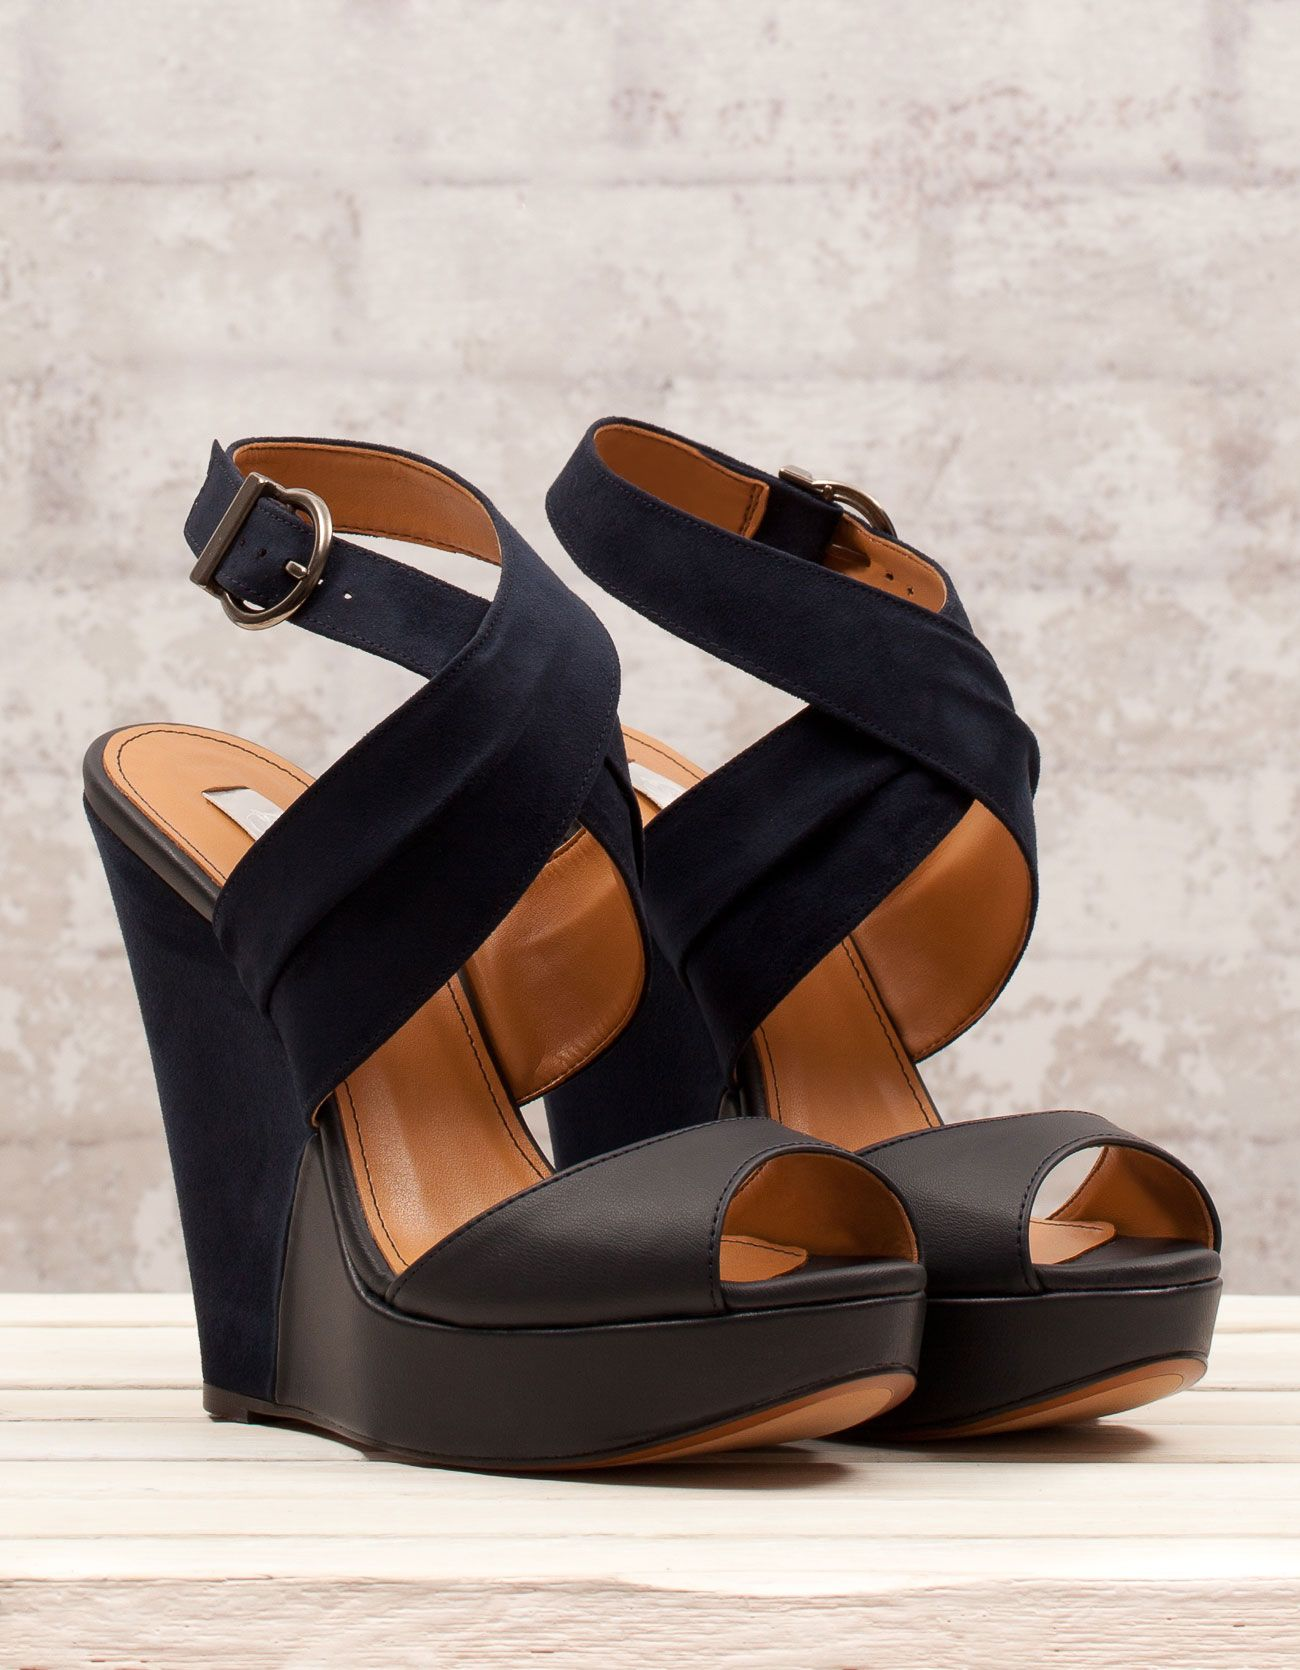 b9360ed2b4f4 Simple but classy. I need a good pair of black heels   the wedge style is  always more comfortable than stilettos.